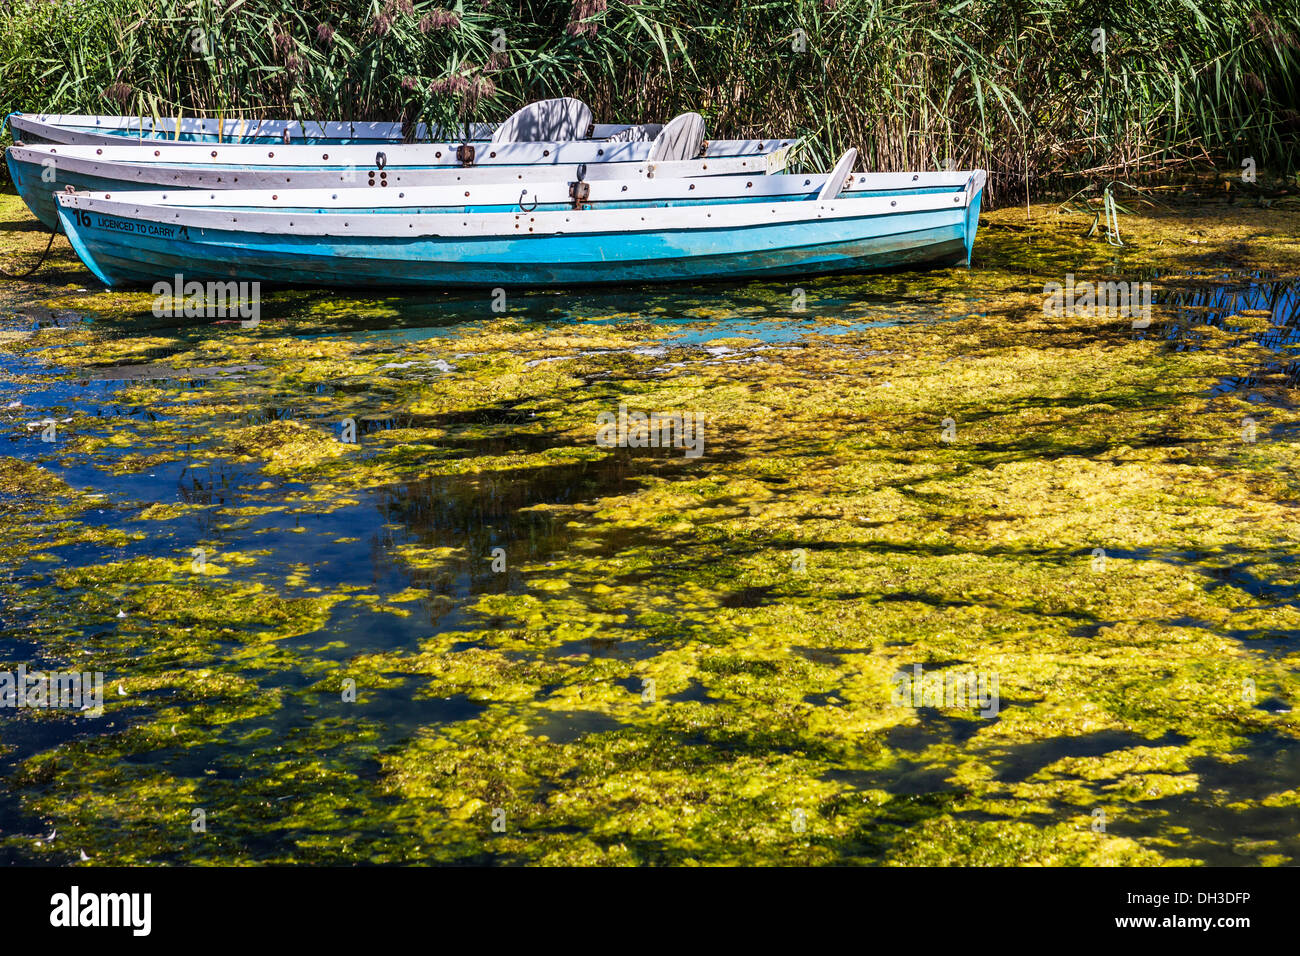 Rowing boats moored on an algae infested inlet at Llangors Lake in the Brecon Beacons National Park, Wales - Stock Image